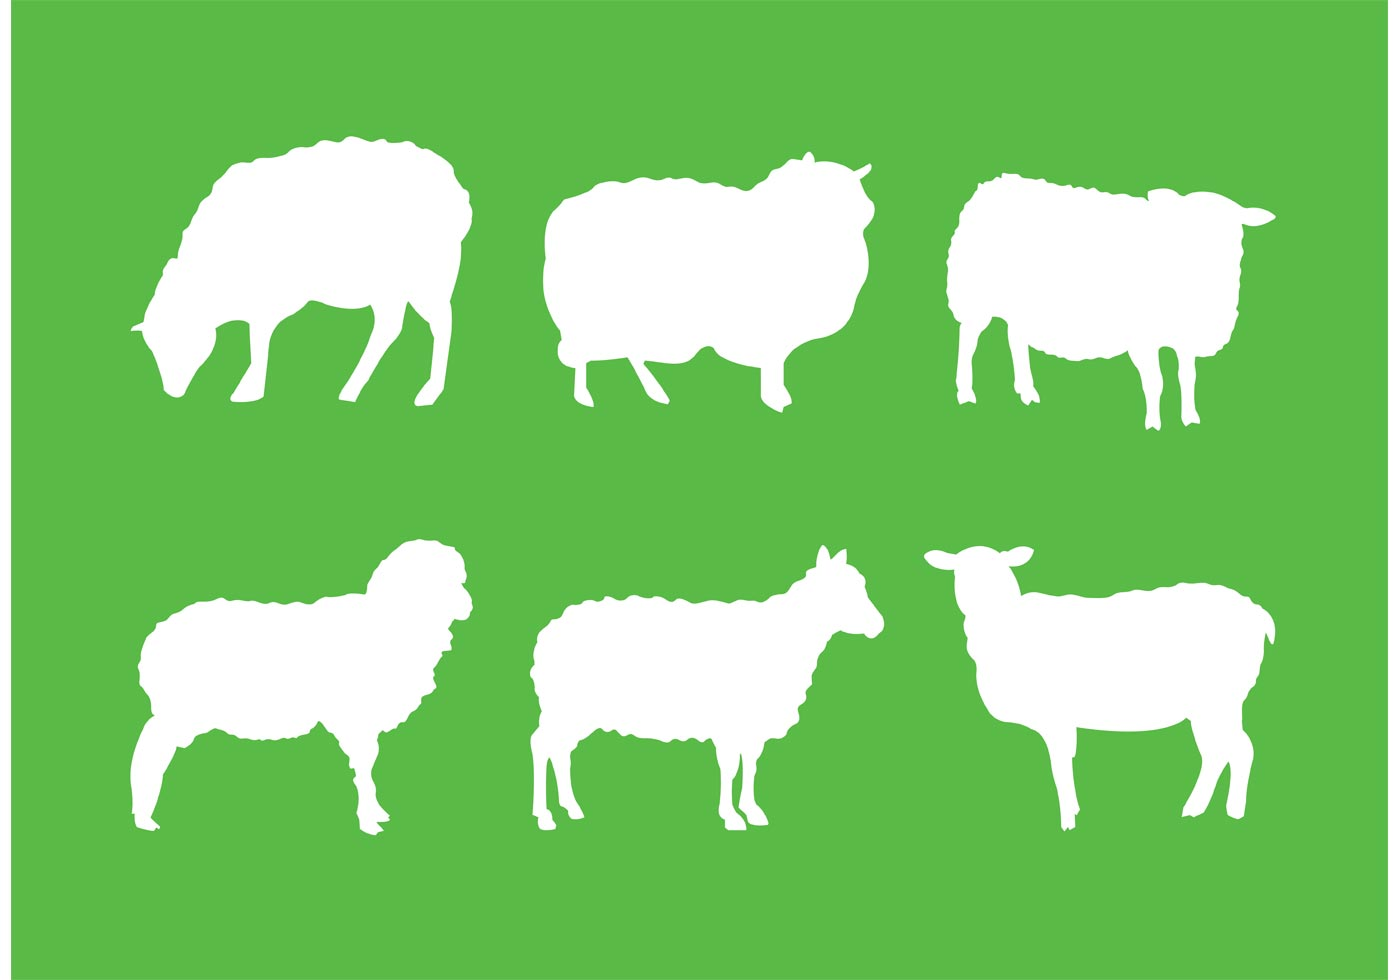 Sheep silhouette - Download Free Vectors, Clipart Graphics ...